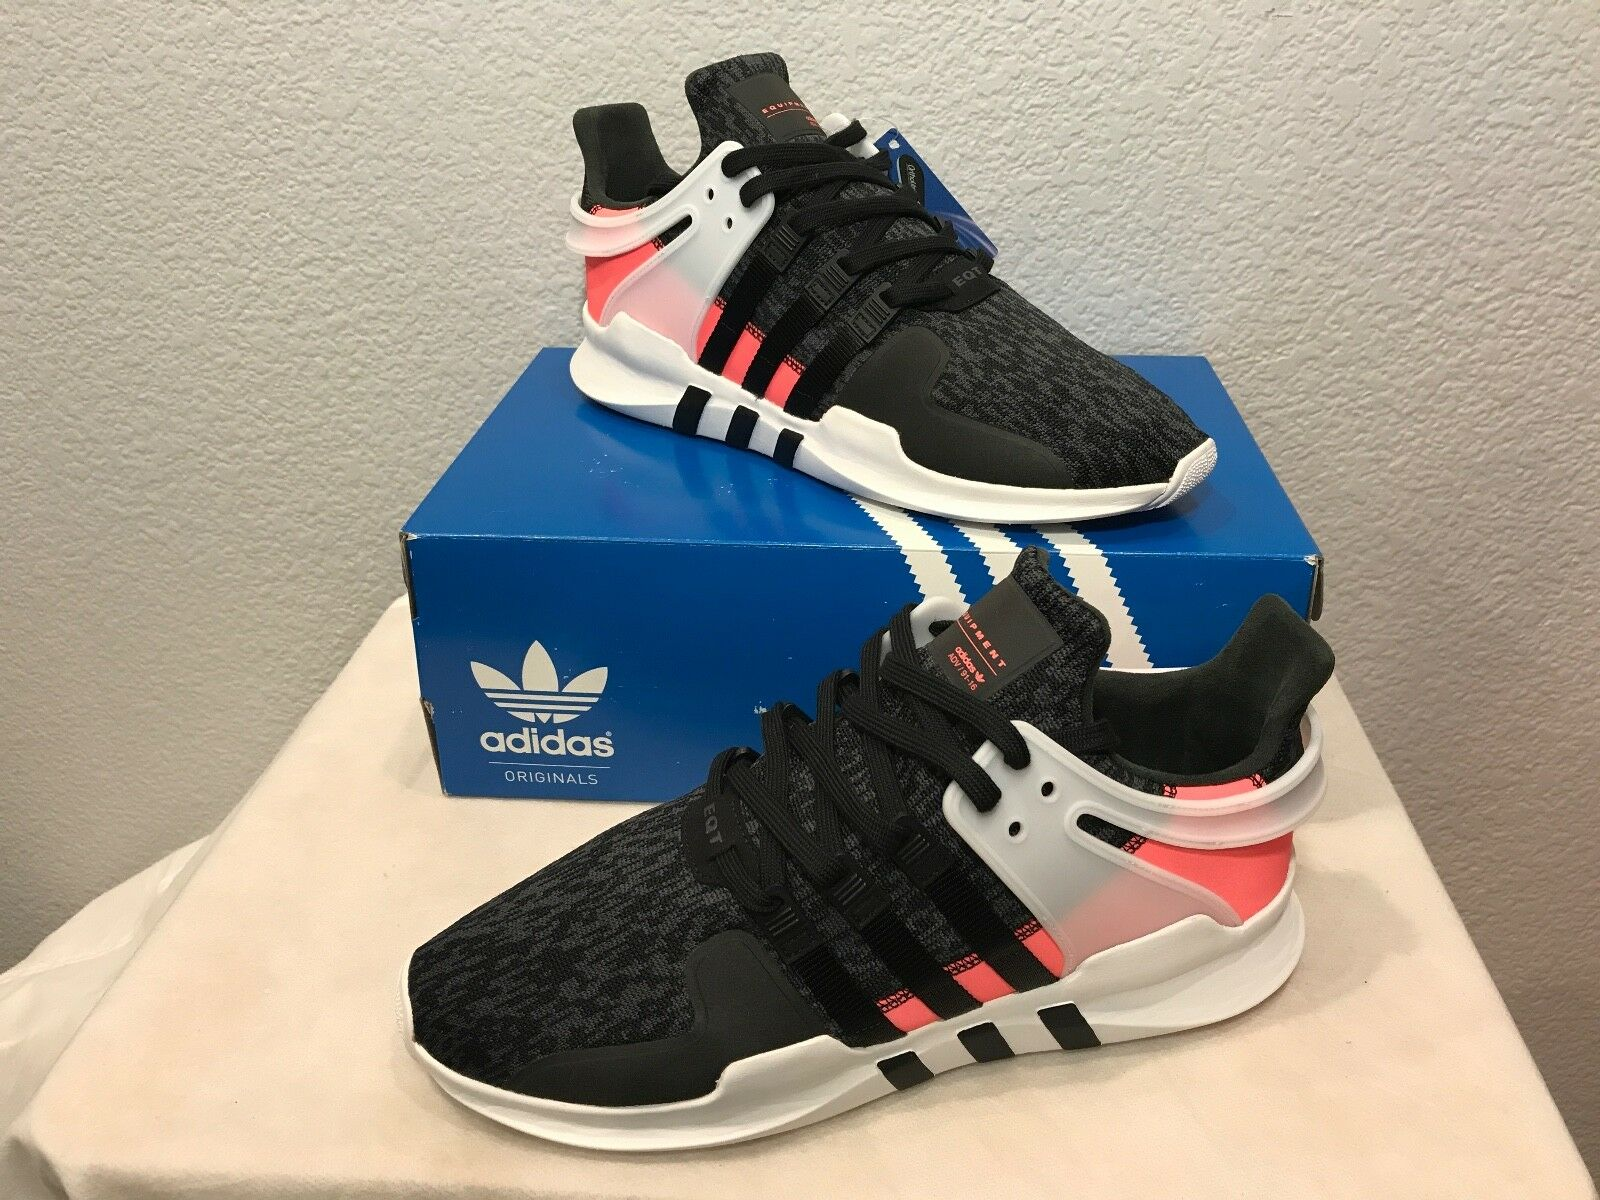 NEW ADIDAS EQT SUPPORT ADV SHOES 91 16 (BB1302) BLACK TURBO RED MEN'S SIZE 13